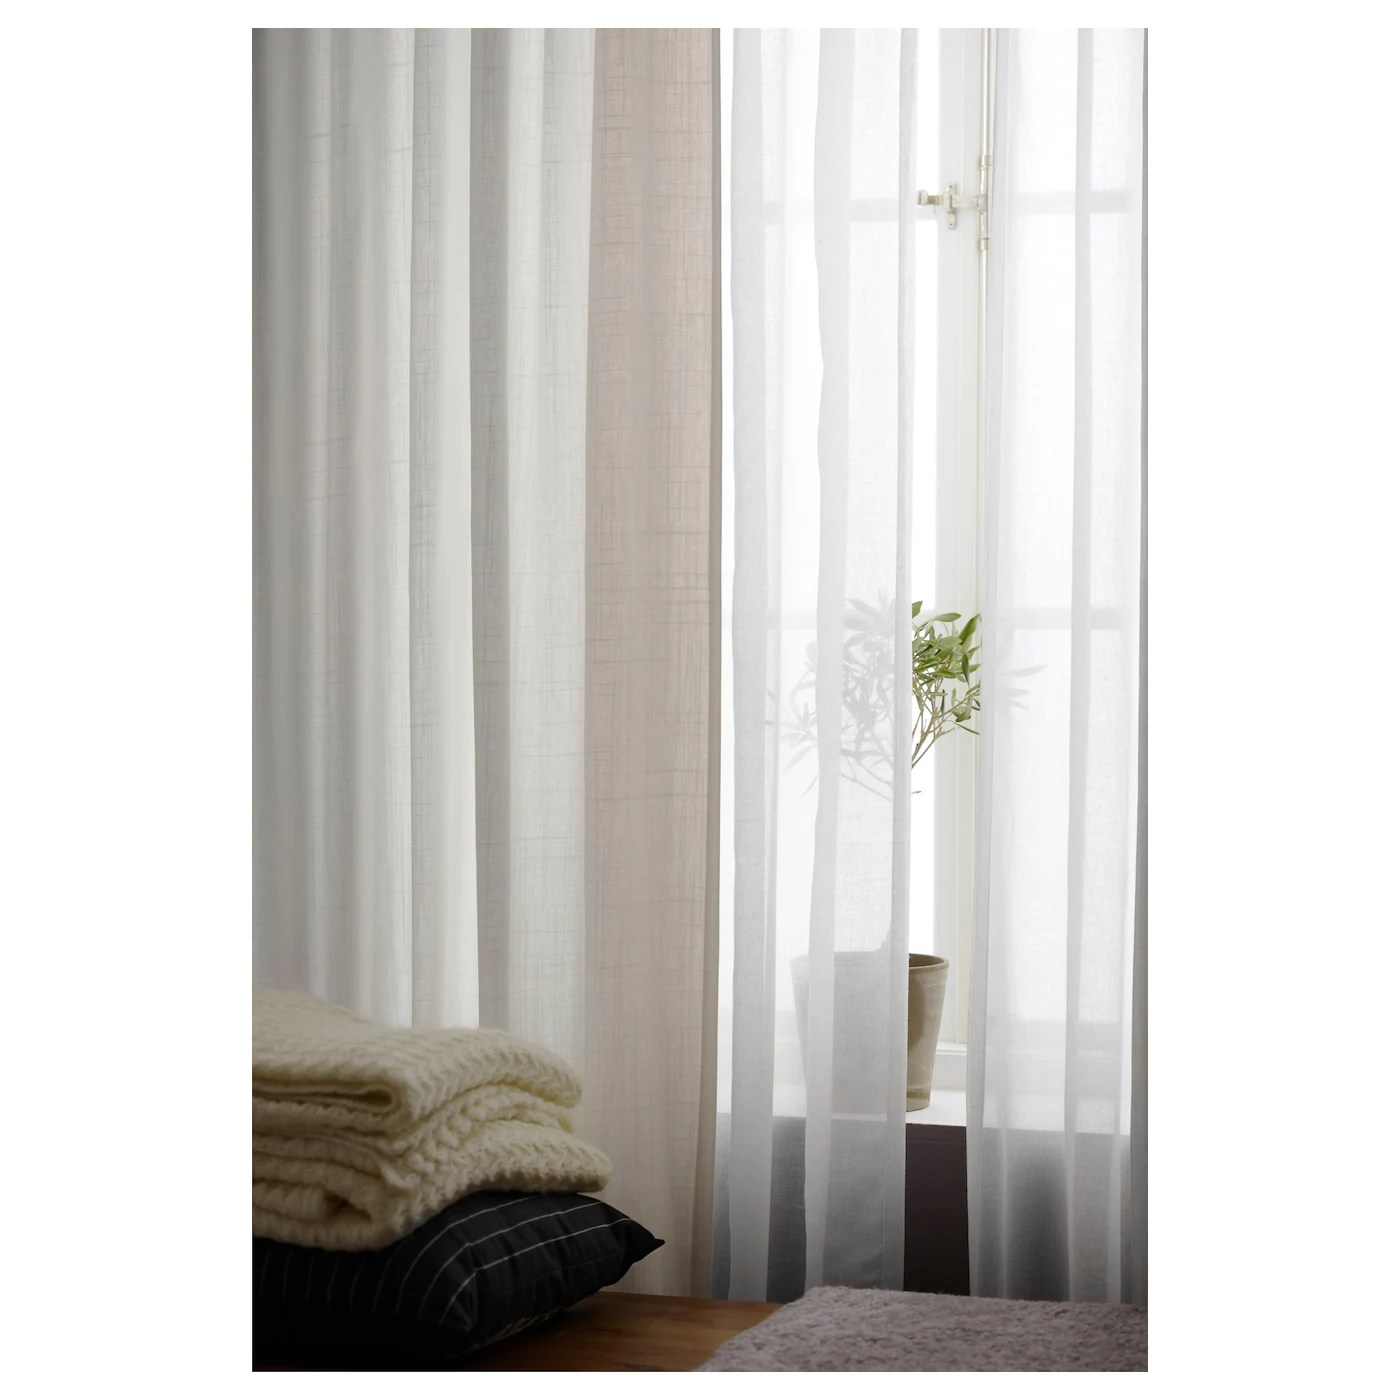 Ritva Curtains With Tie Backs 1 Pair White 57x118 - Ikea Wili Vorhang